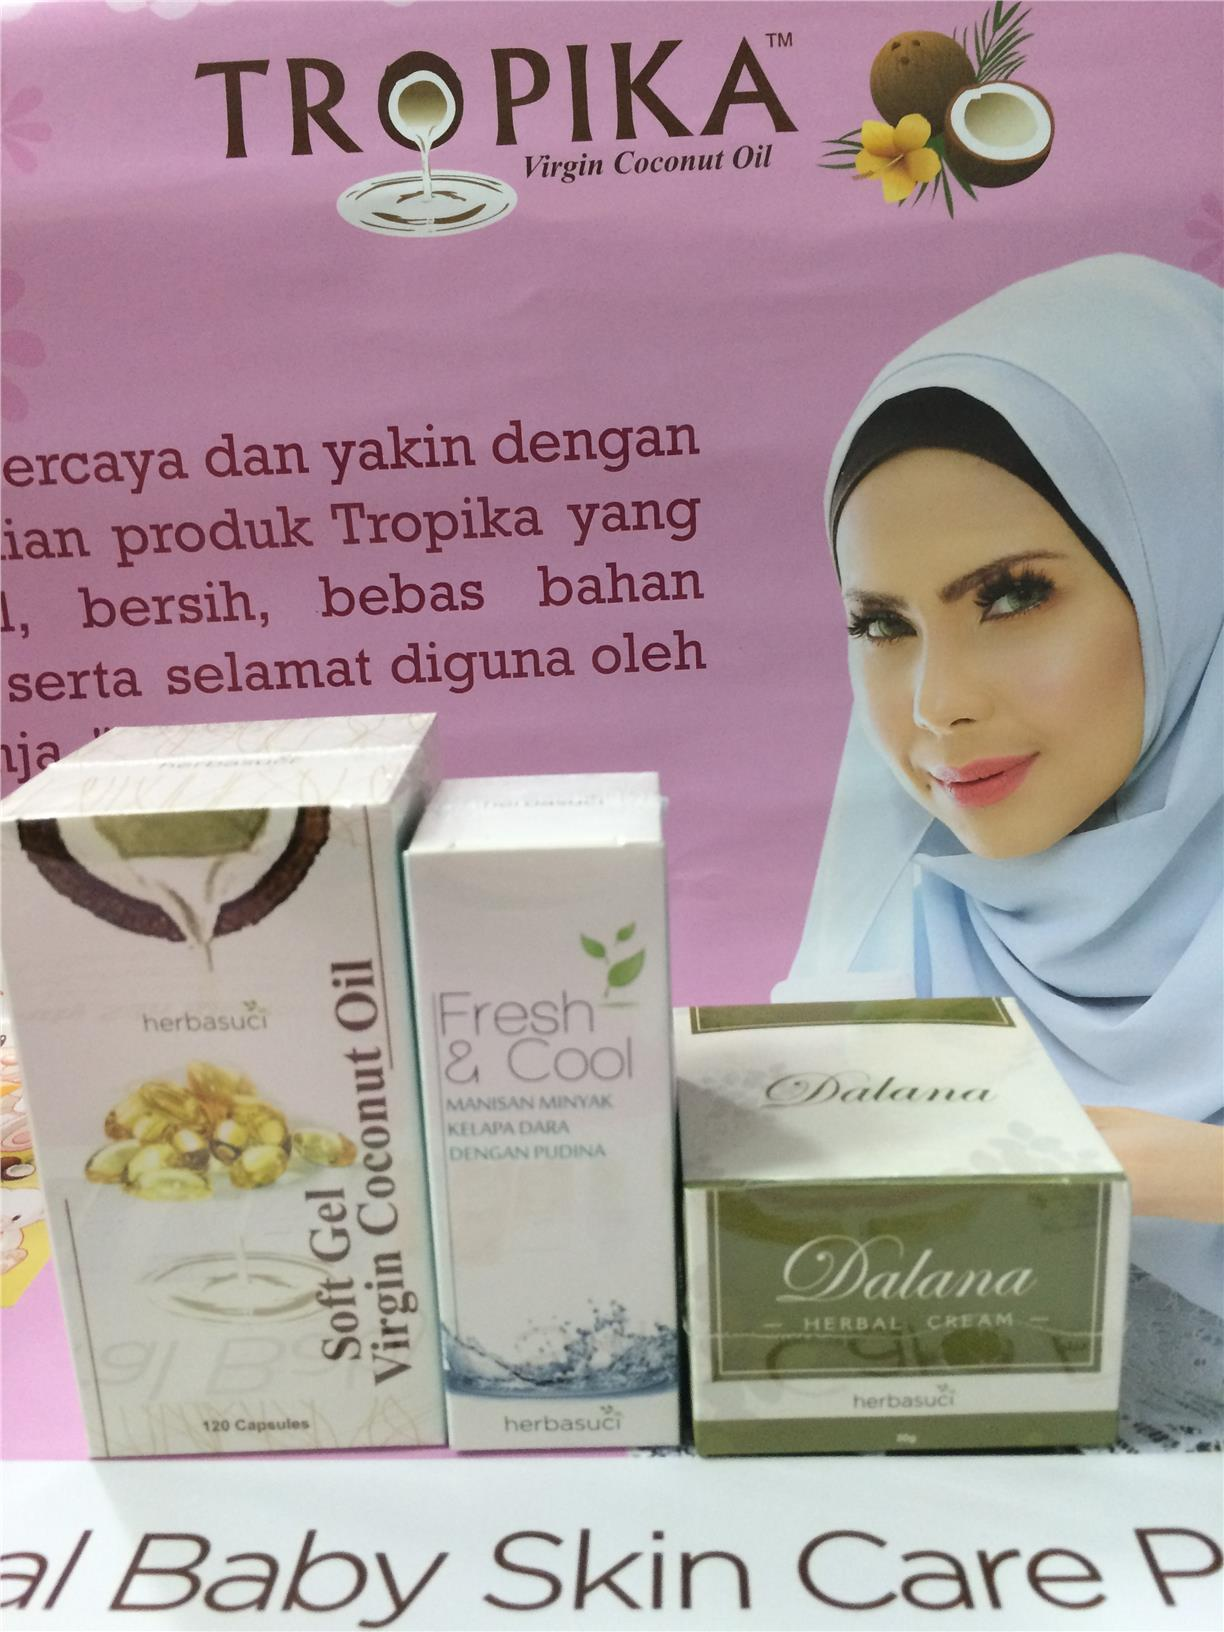 Herbasuci Set - Soft Gel/Dalana Herbal Cream/Fresh & Cool